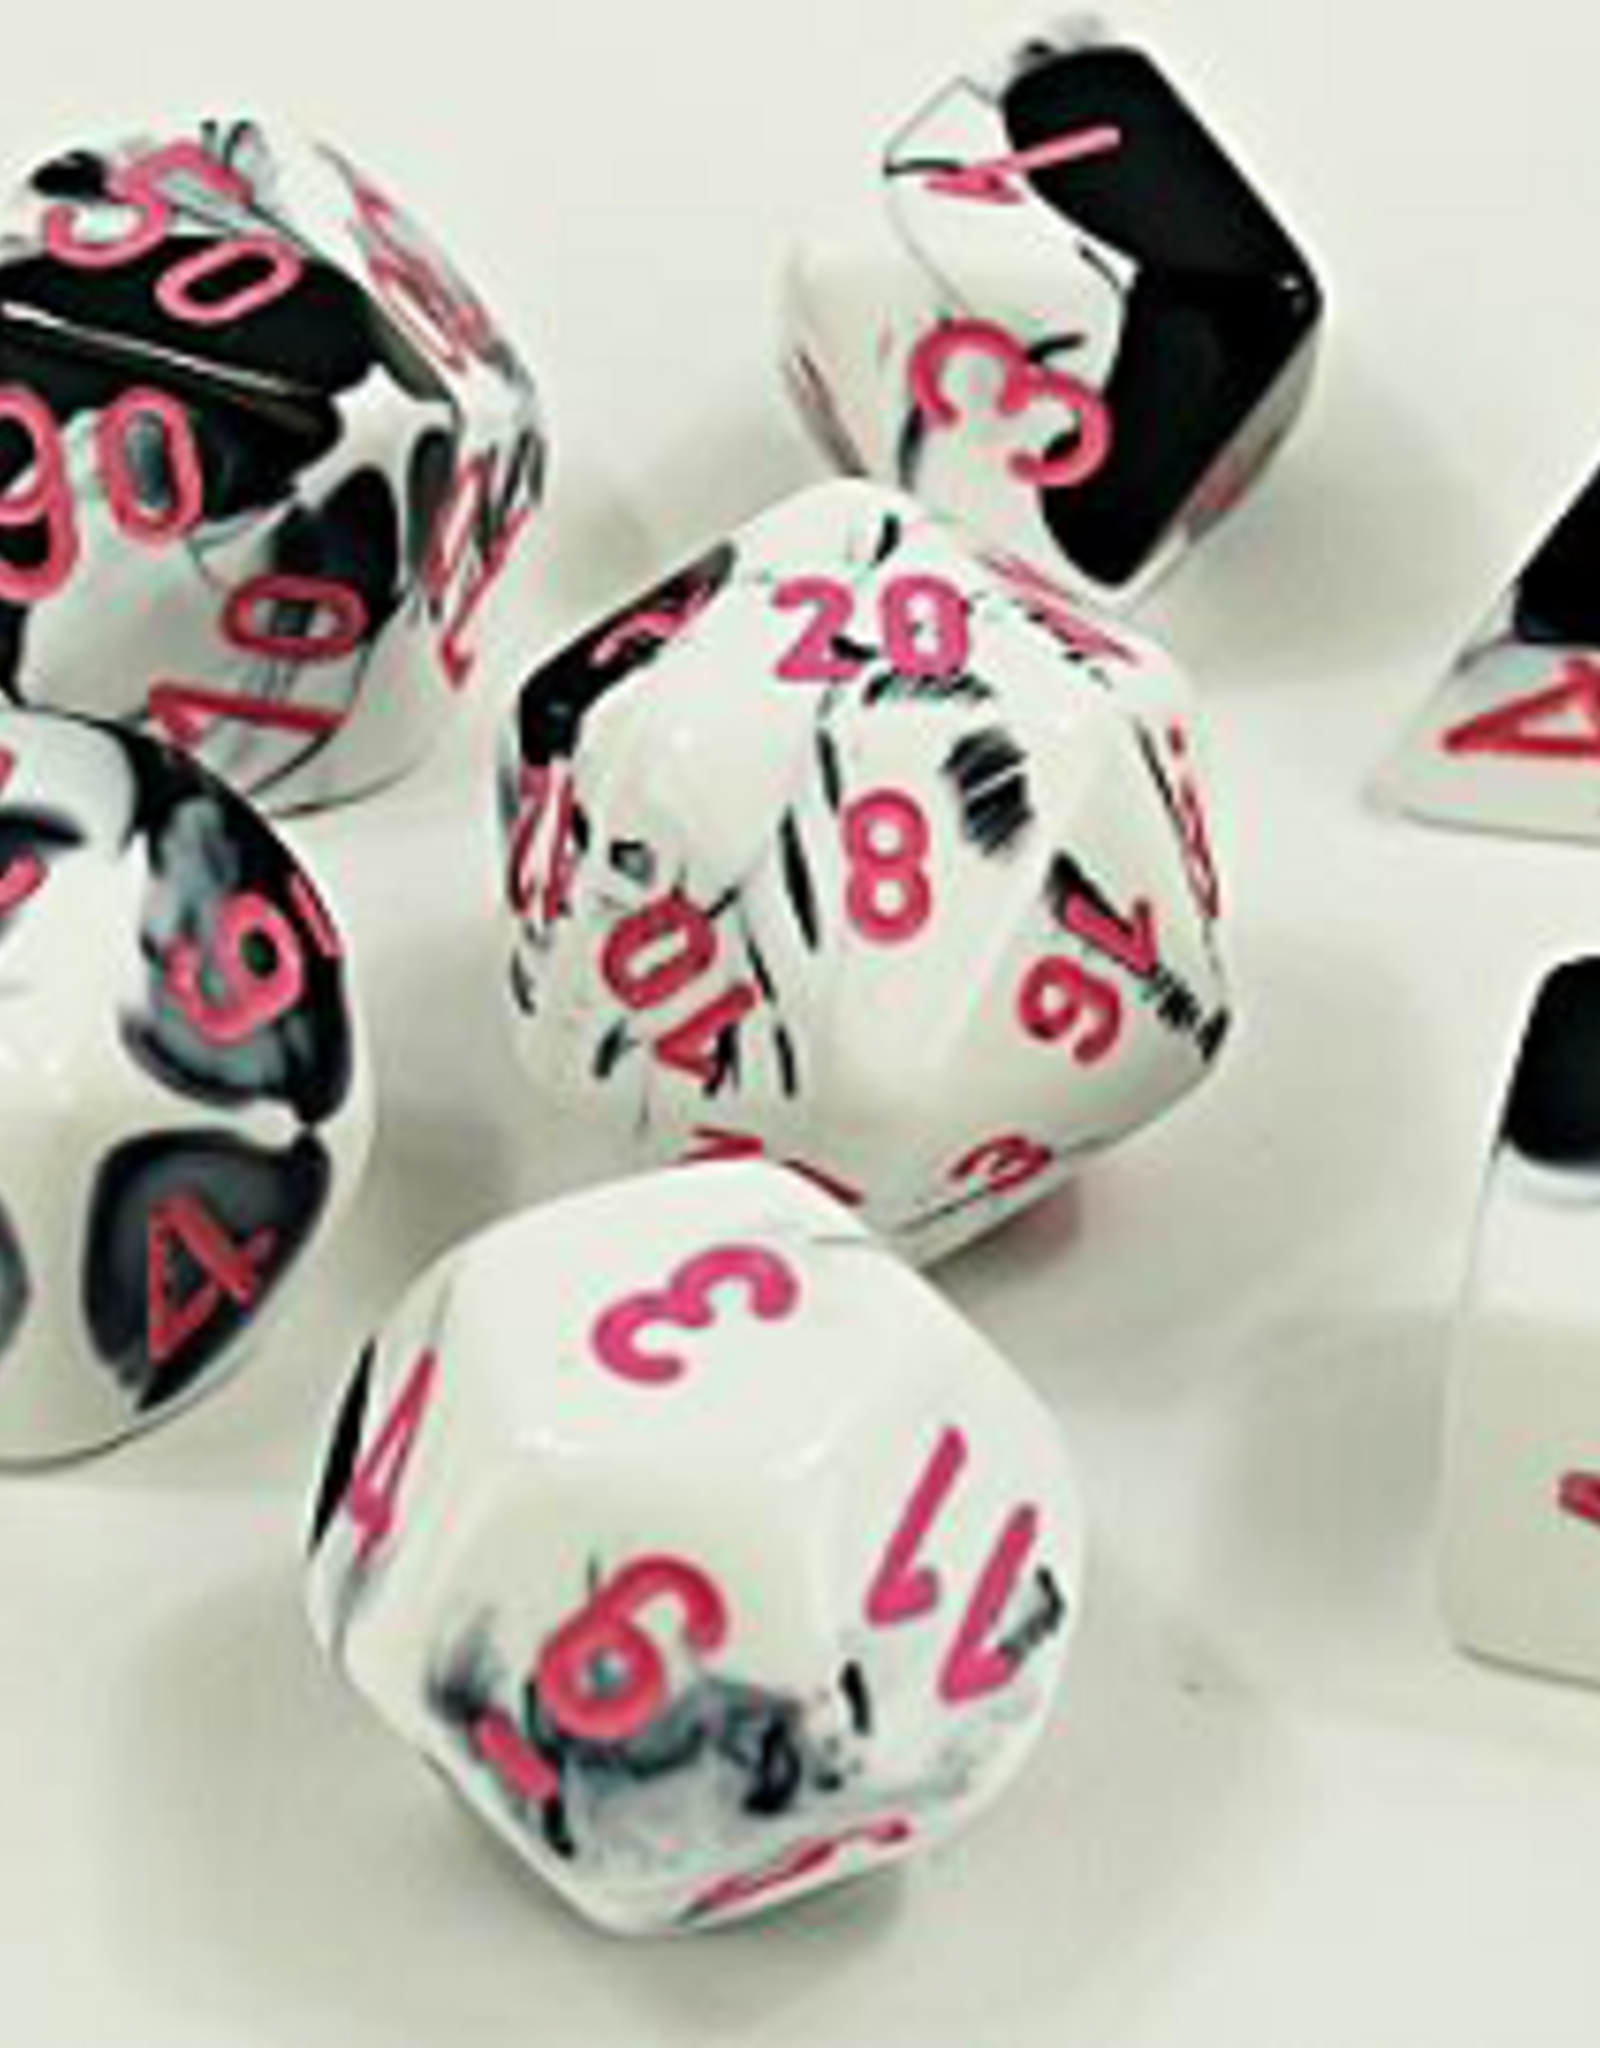 Chessex Dice Block 7ct. - Gemini  Black/White/Pink